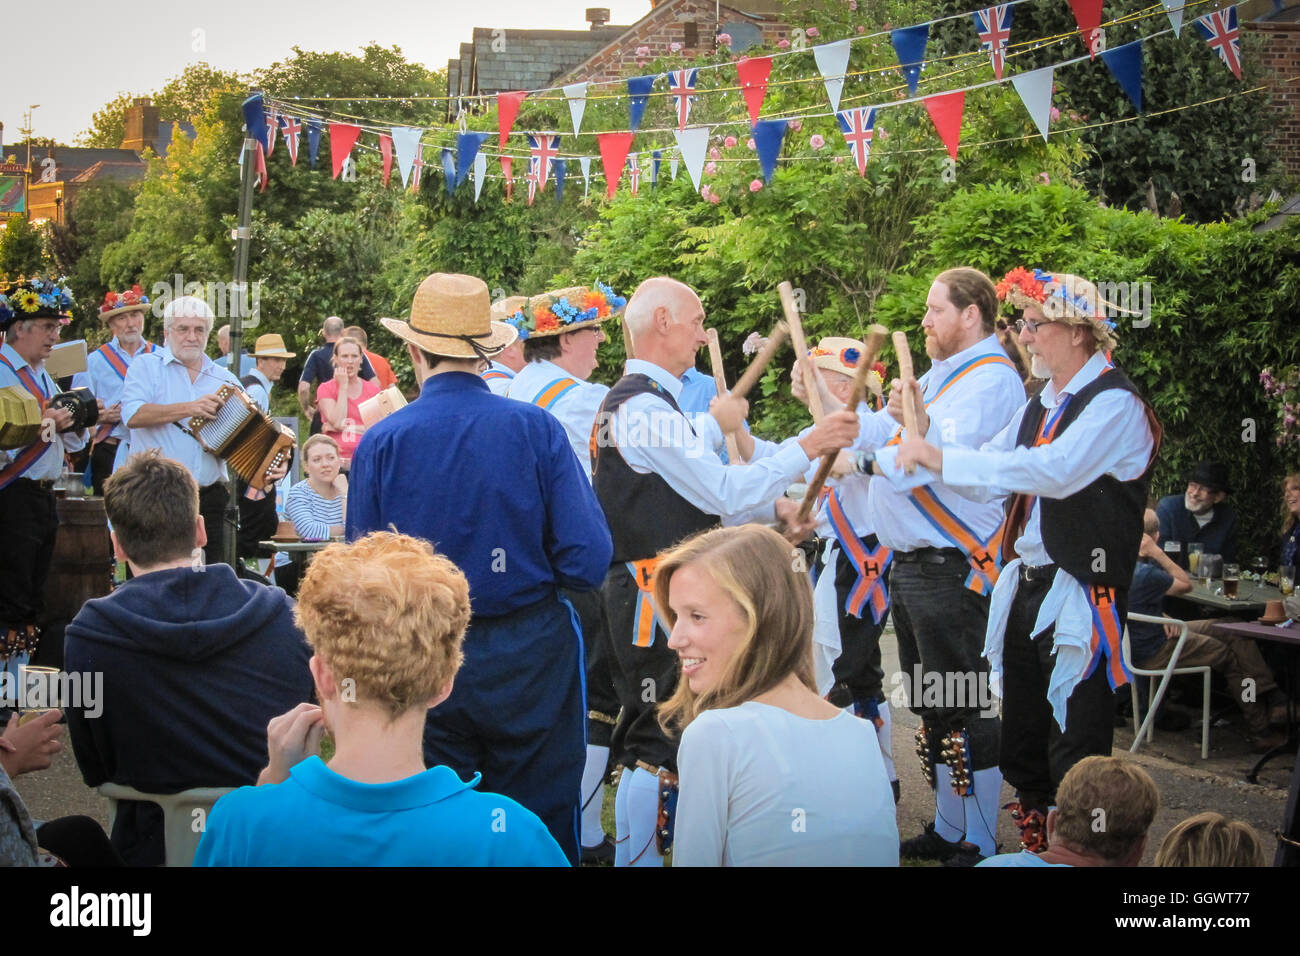 Morris dance is a form of English folk dance dating to the 1400's with rhythmic stepping, wielding sticks, swords, - Stock Image